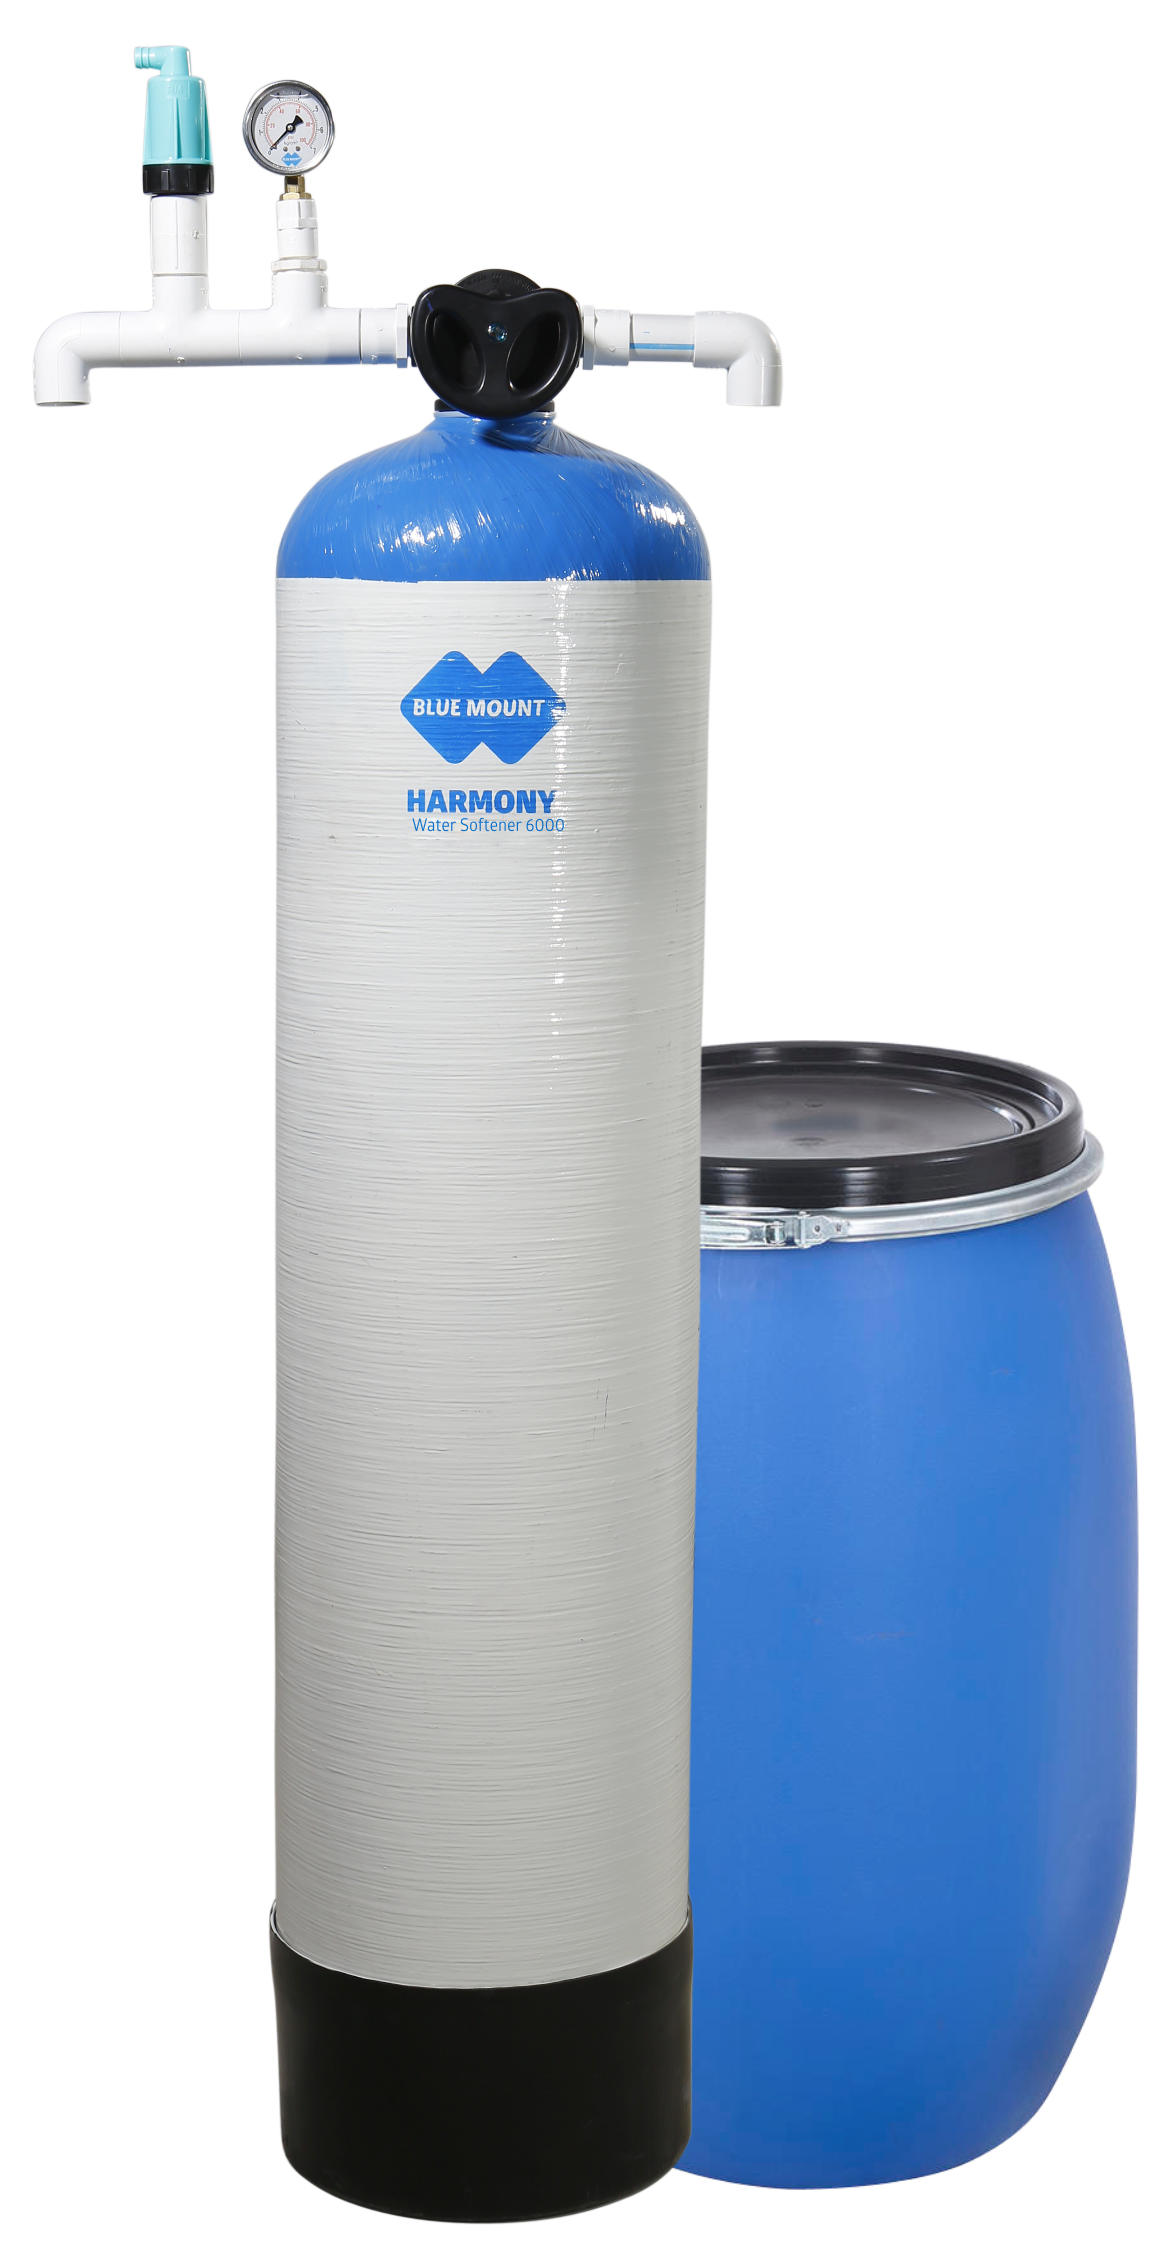 Blue Mount Harmony water softener 6000